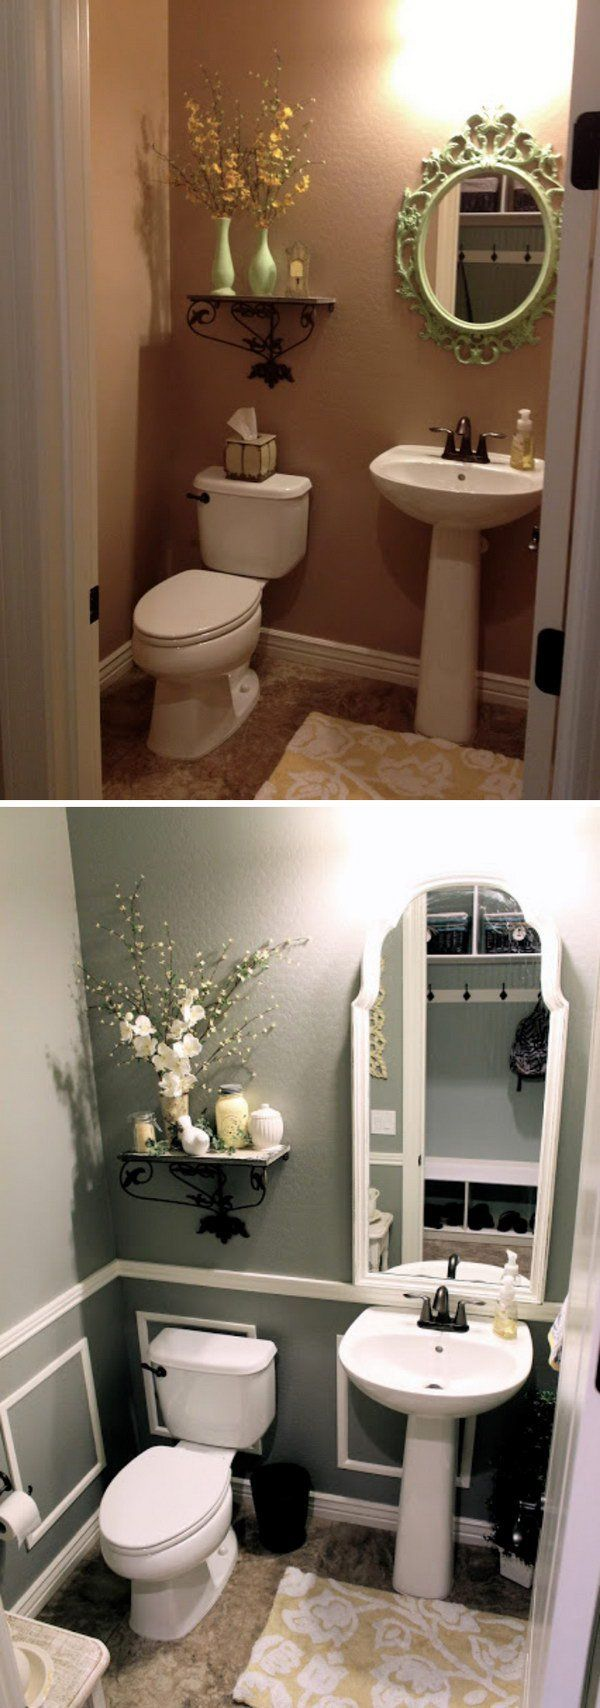 37 Small Bathroom Makeovers. Before And After Pics